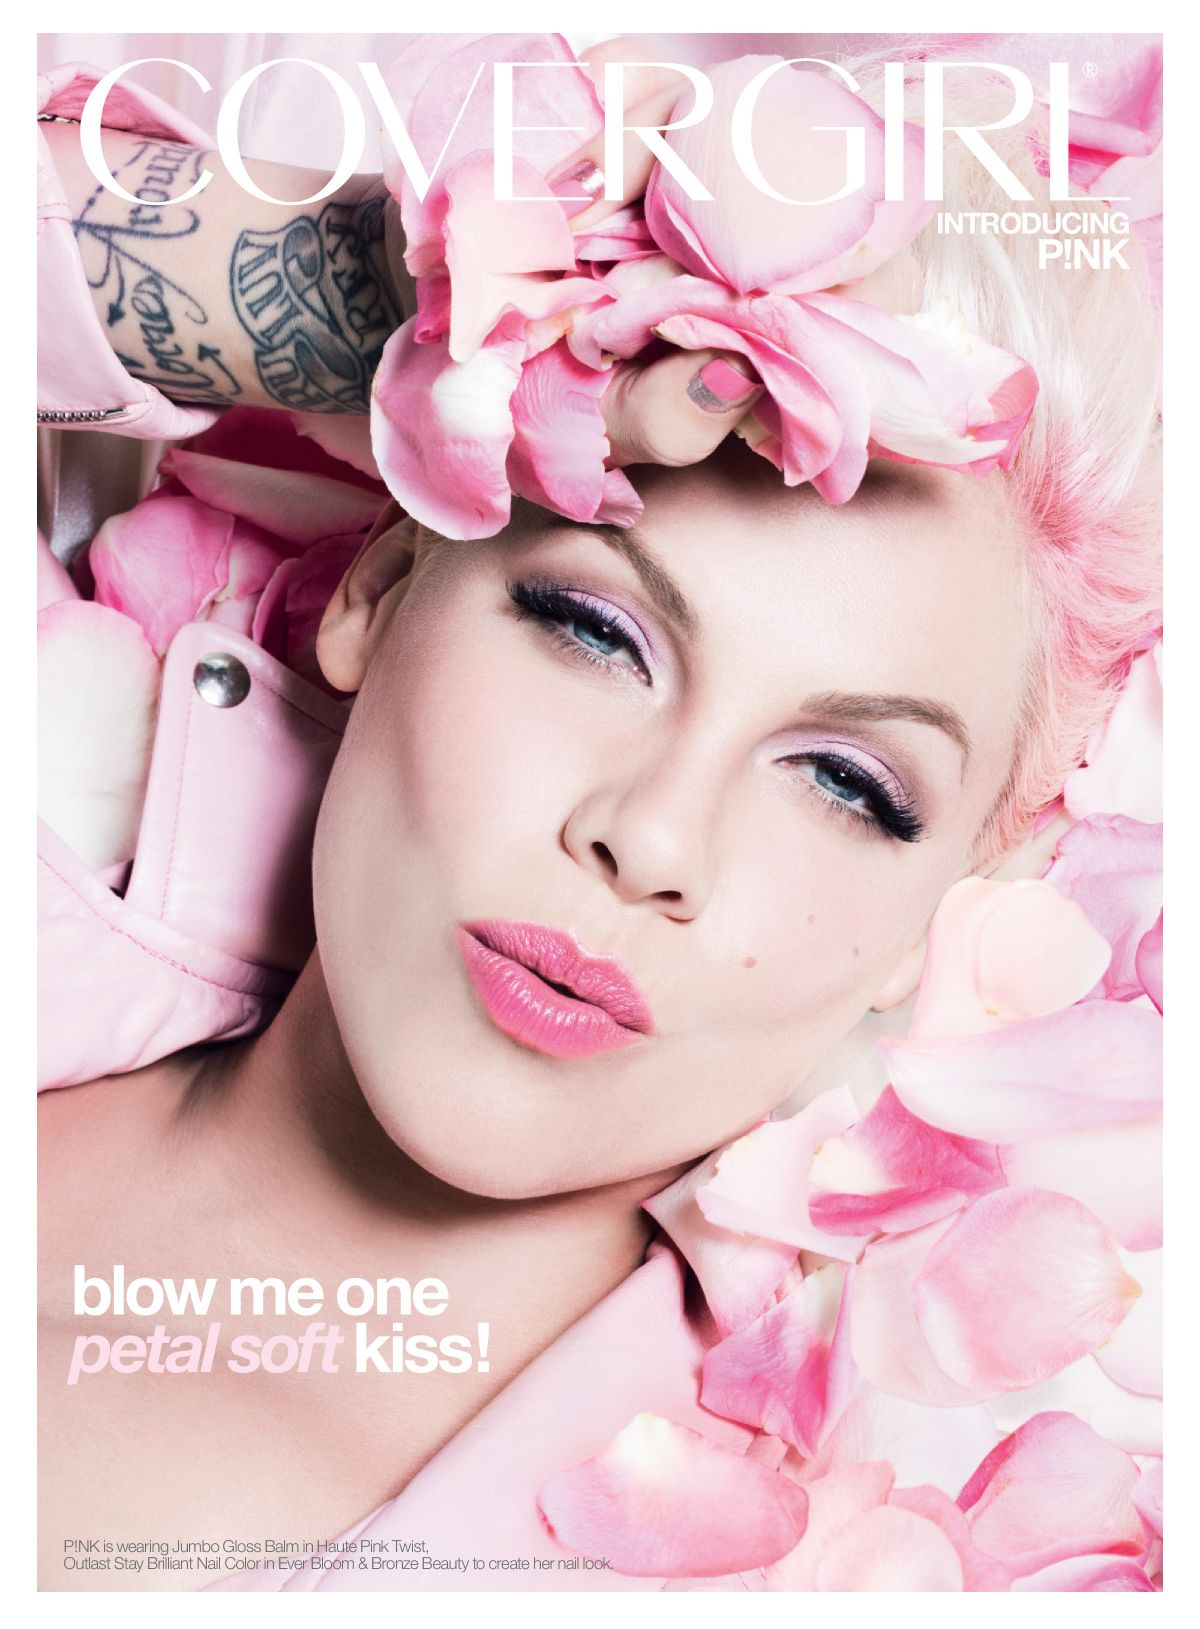 Pink At Covergirl Ad Campaign 2013 - Celebzz